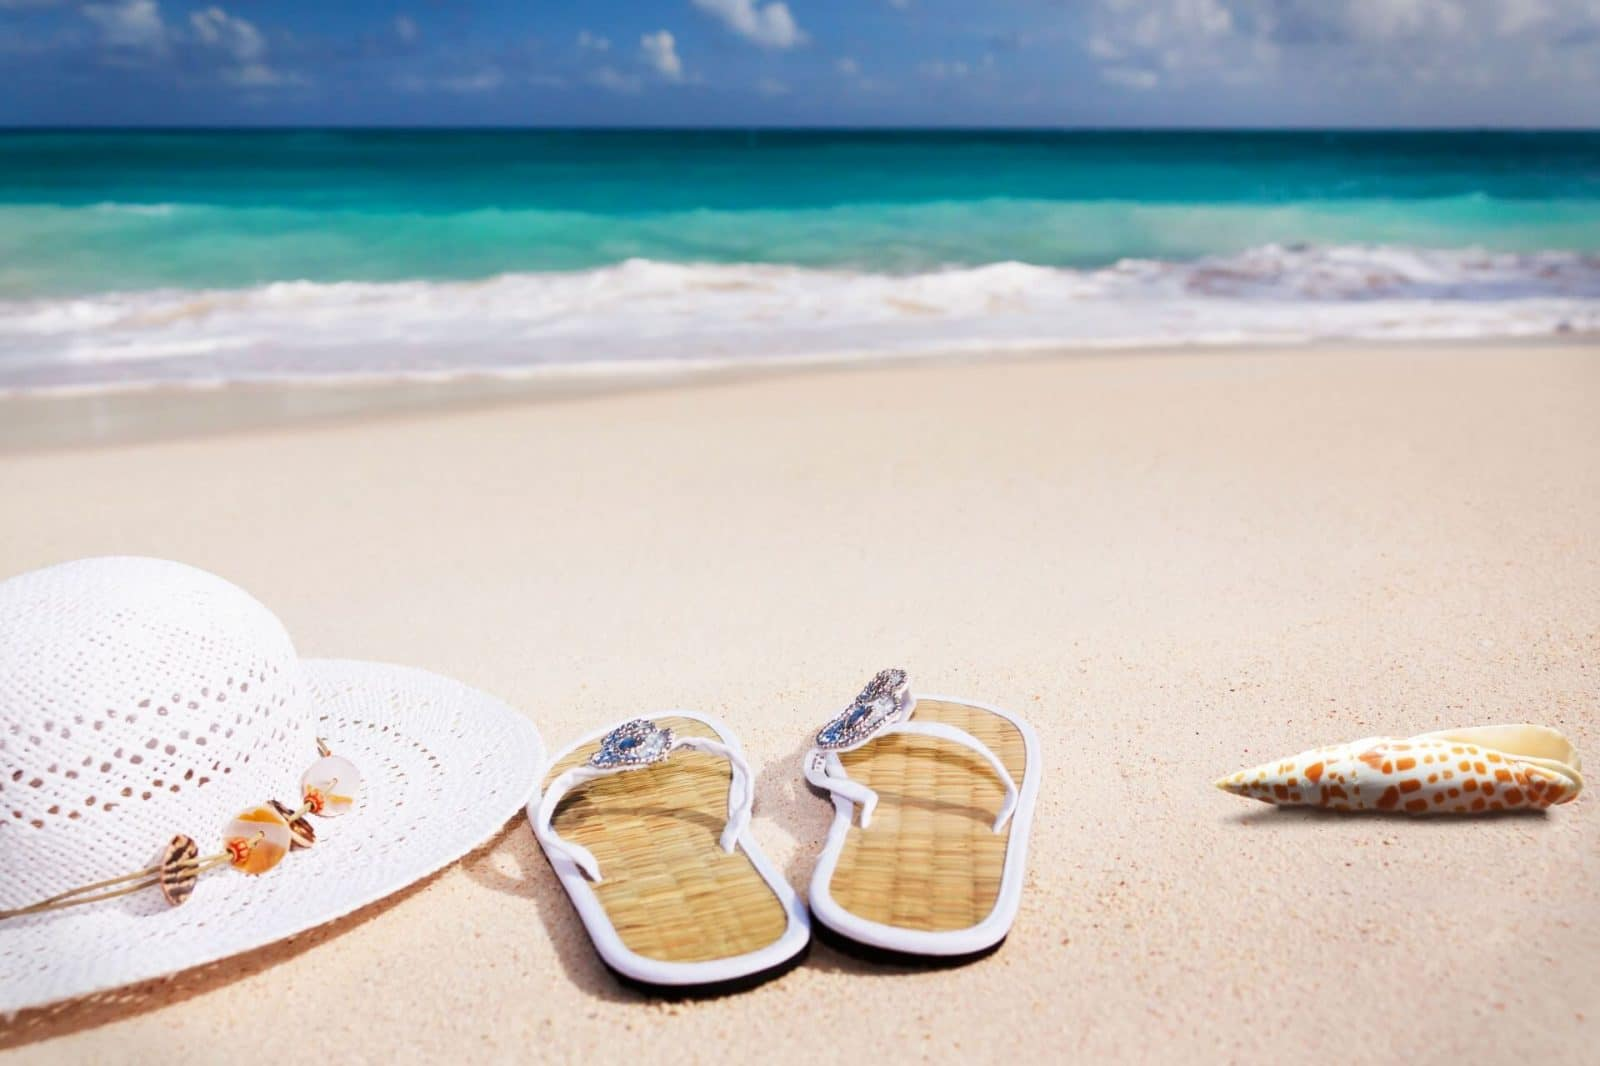 Summer vacations beach packing list, flip flops to take with you on a beach vacation